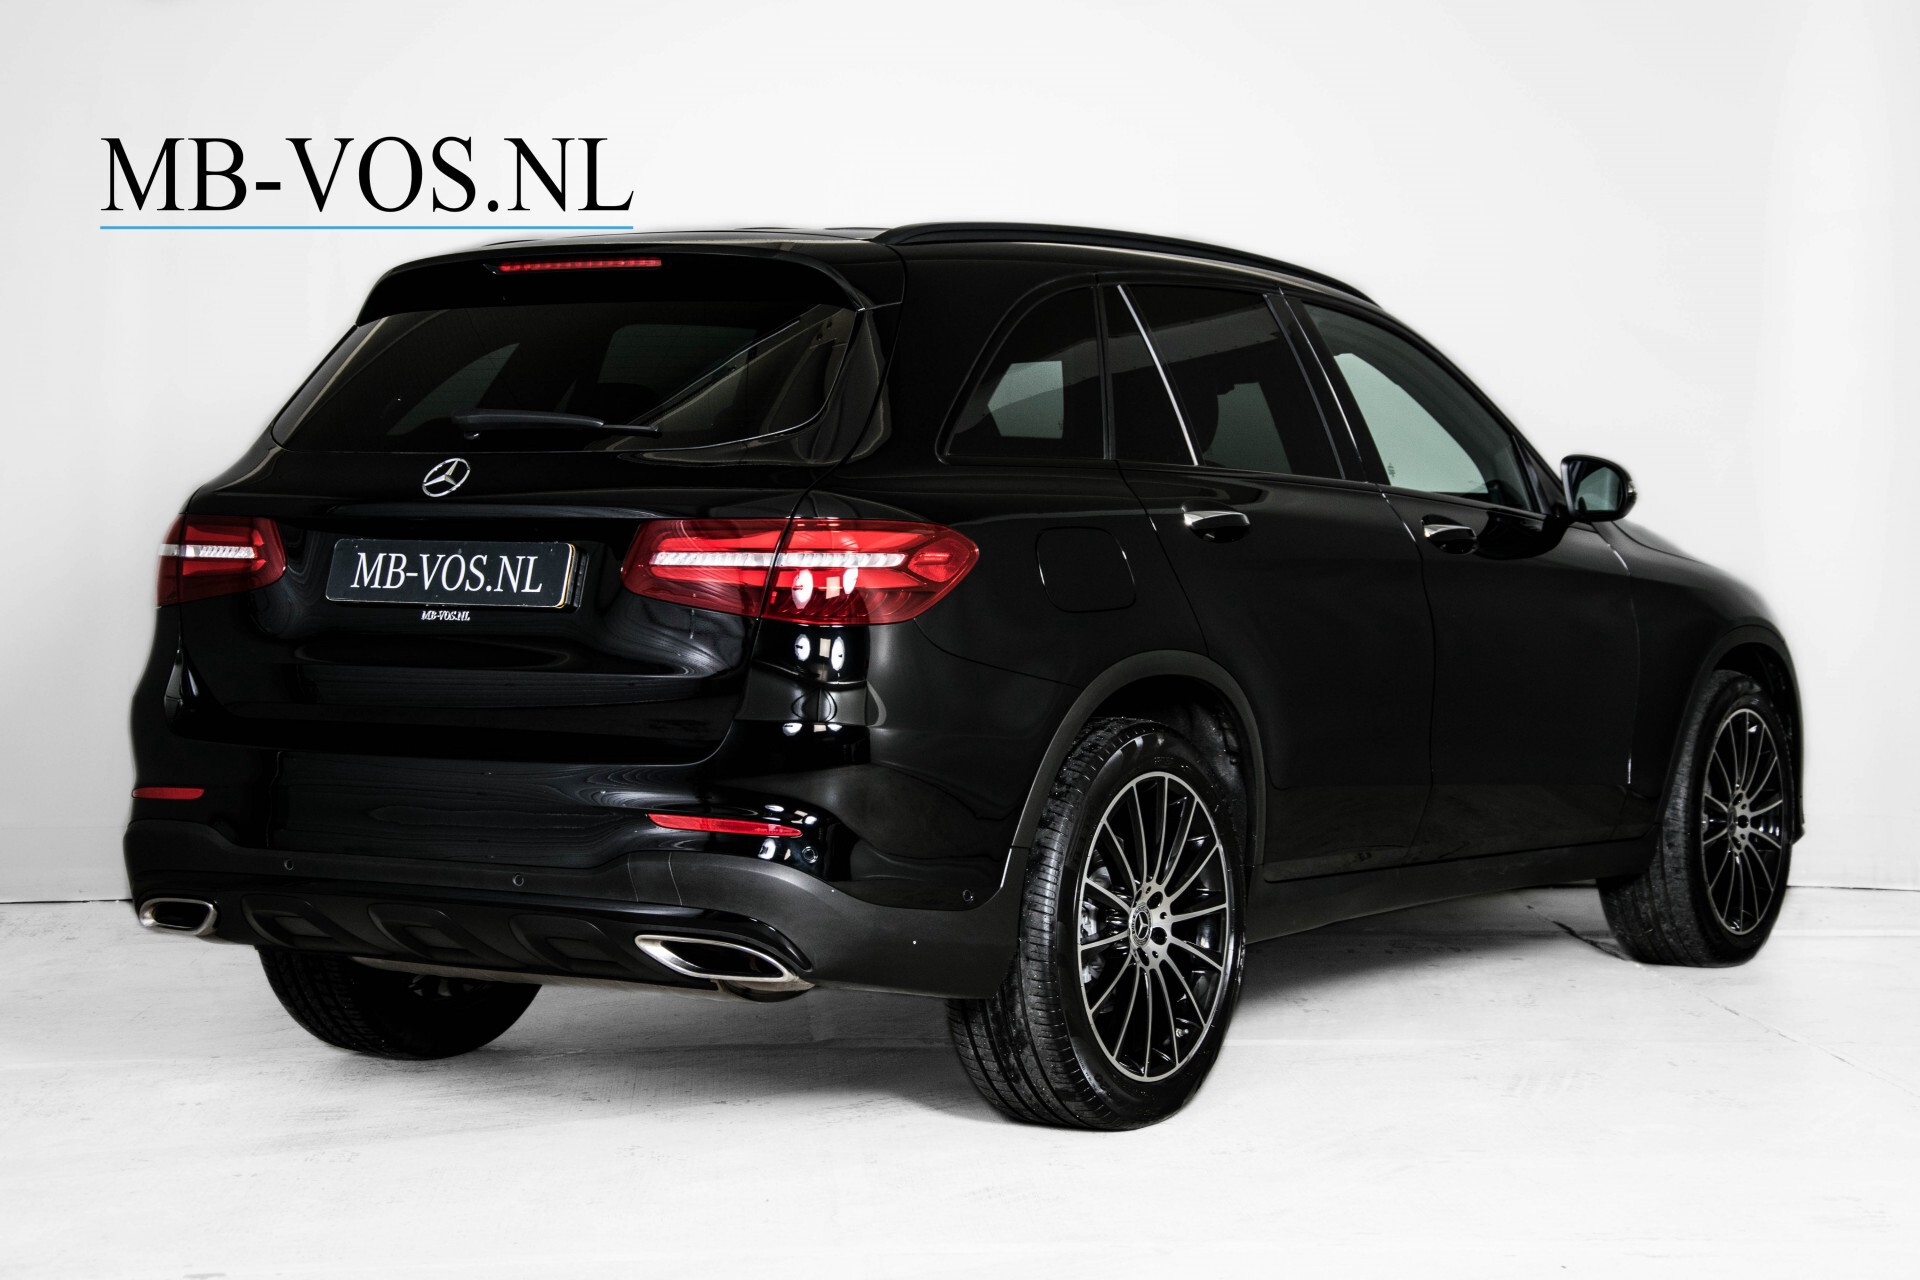 Mercedes-Benz GLC-Klasse 300 4-M AMG Panorama Distronic/Keyless/Burmester/Memory/Night Aut9 Foto 2